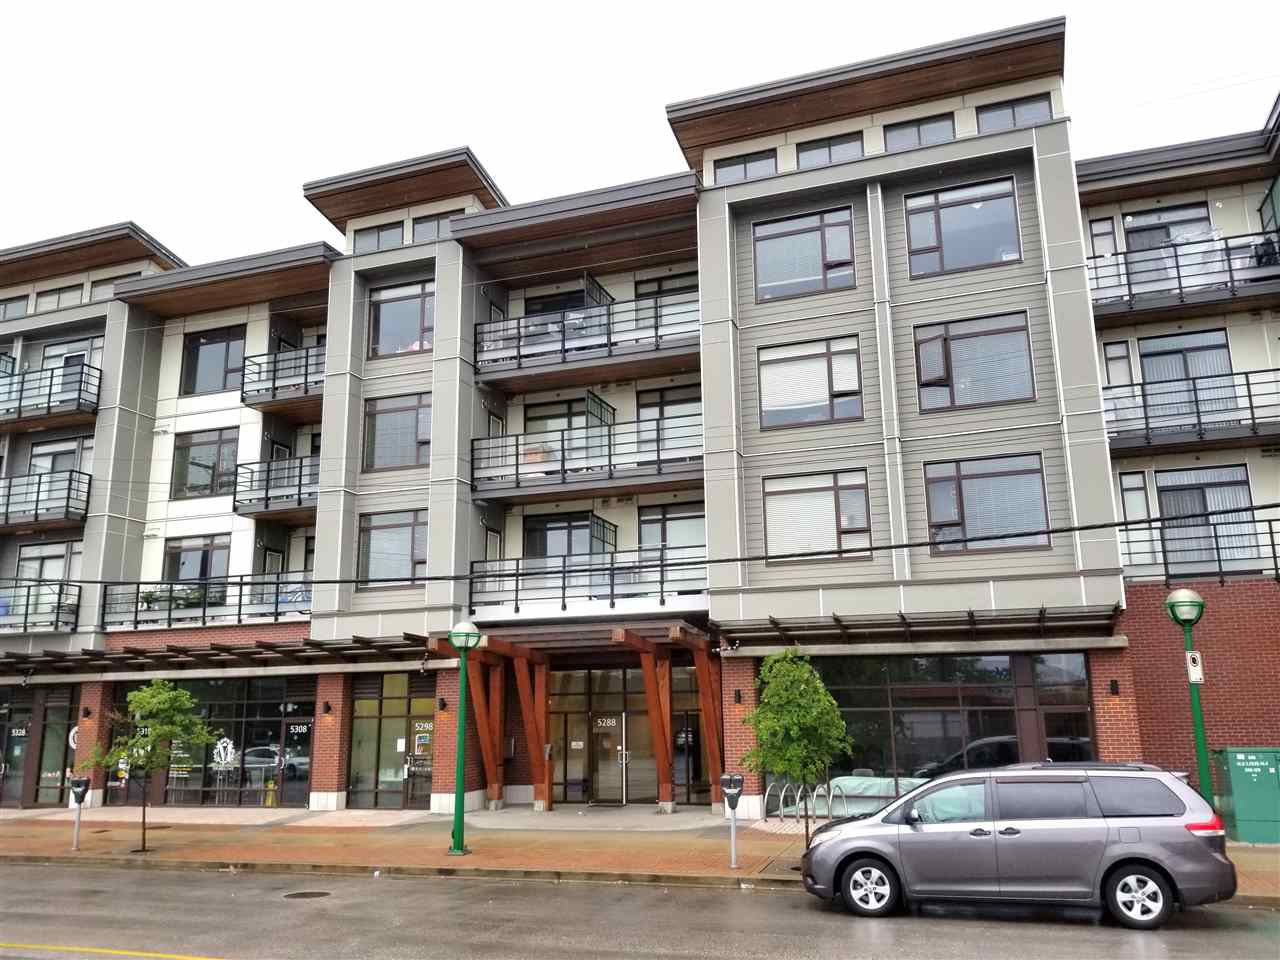 """Main Photo: 321 5288 GRIMMER Street in Burnaby: Metrotown Condo for sale in """"METRO2"""" (Burnaby South)  : MLS®# R2368430"""